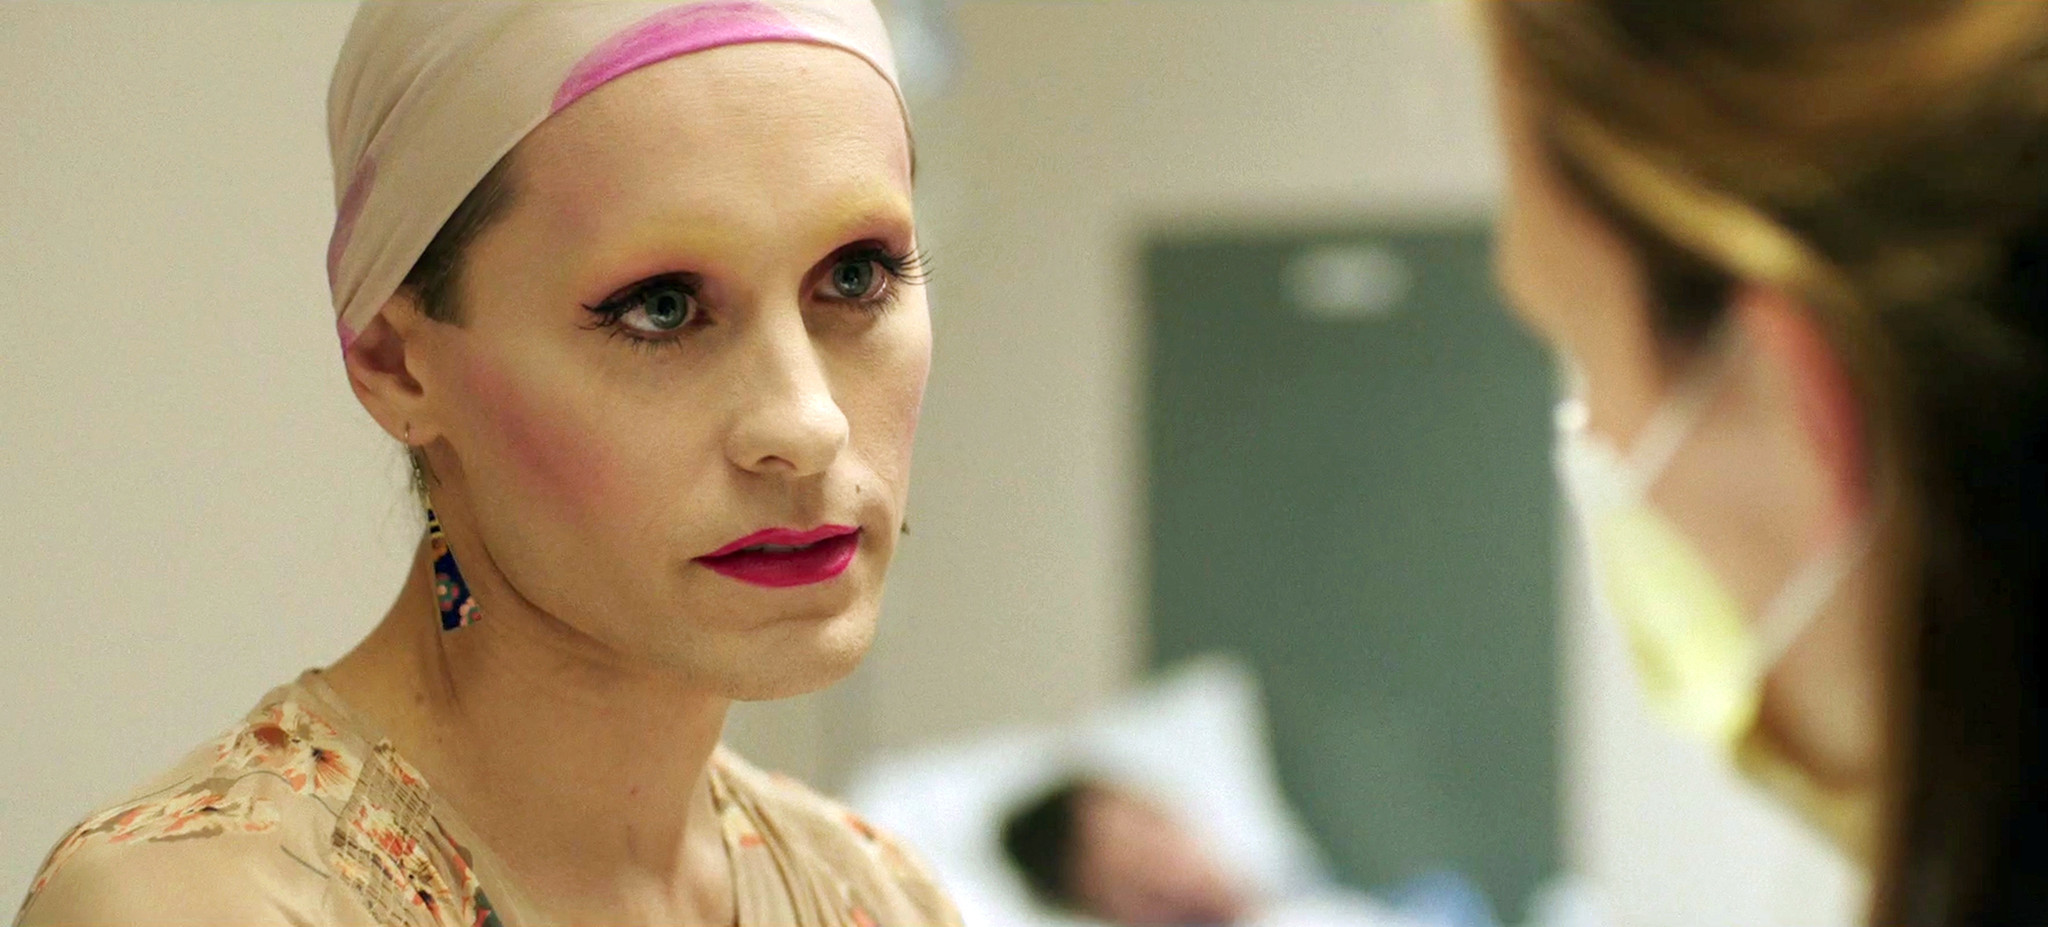 'Dallas Buyers Club': Jared Leto on bringing Rayon to life ...